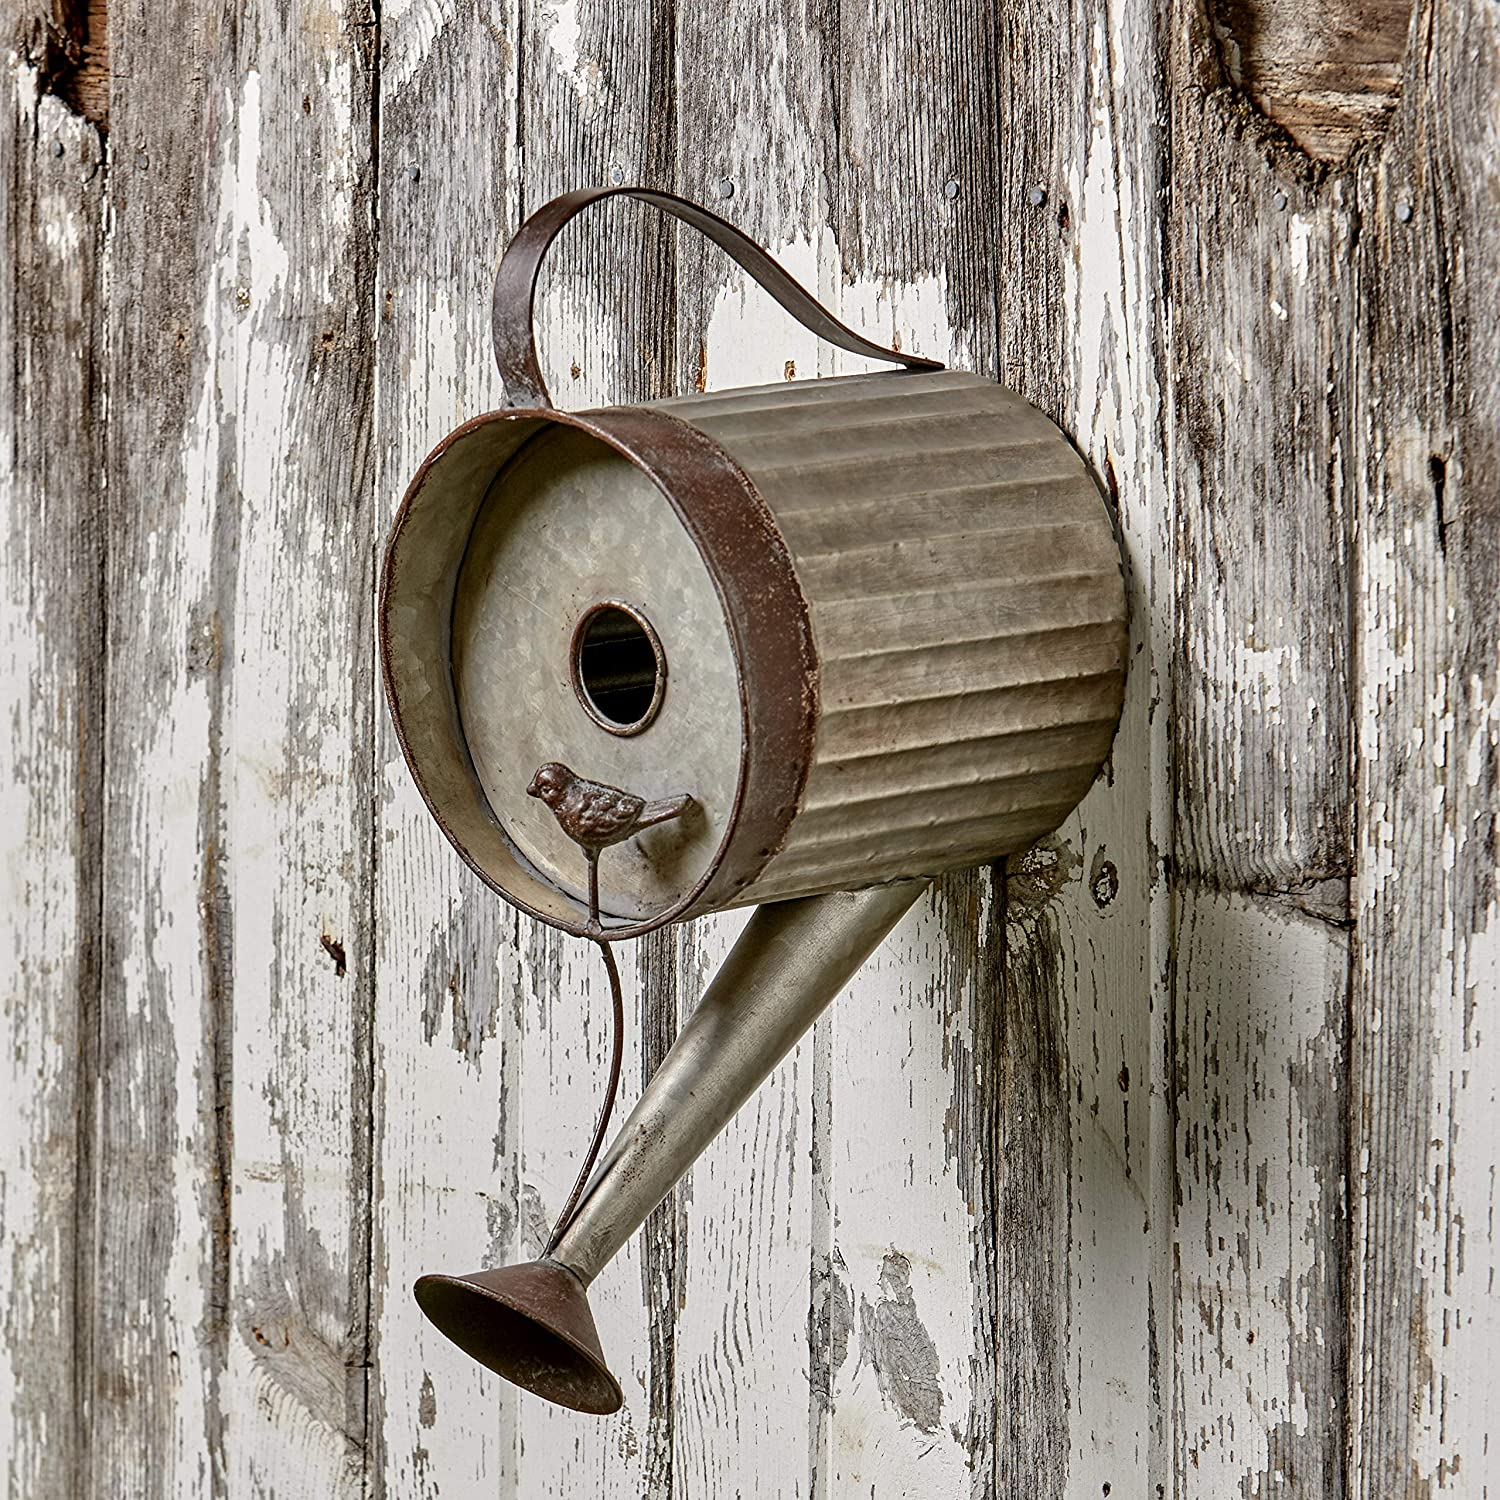 The Lakeside Collection Watering Can Birdhouse - Distressed Metal Bird House for Hanging Outdoors